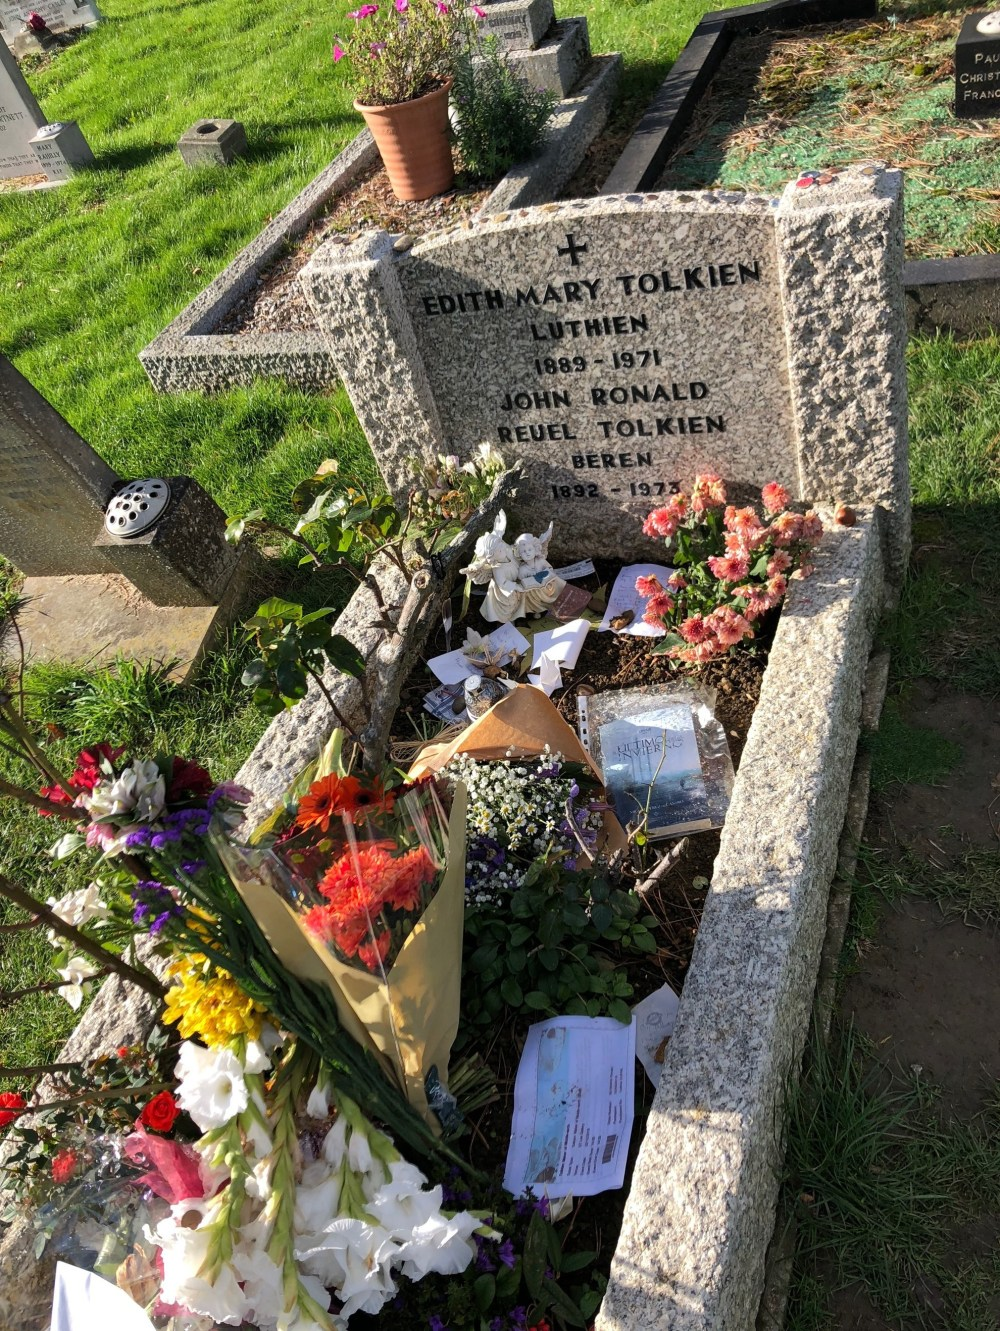 The grave of Tolkien and his wife